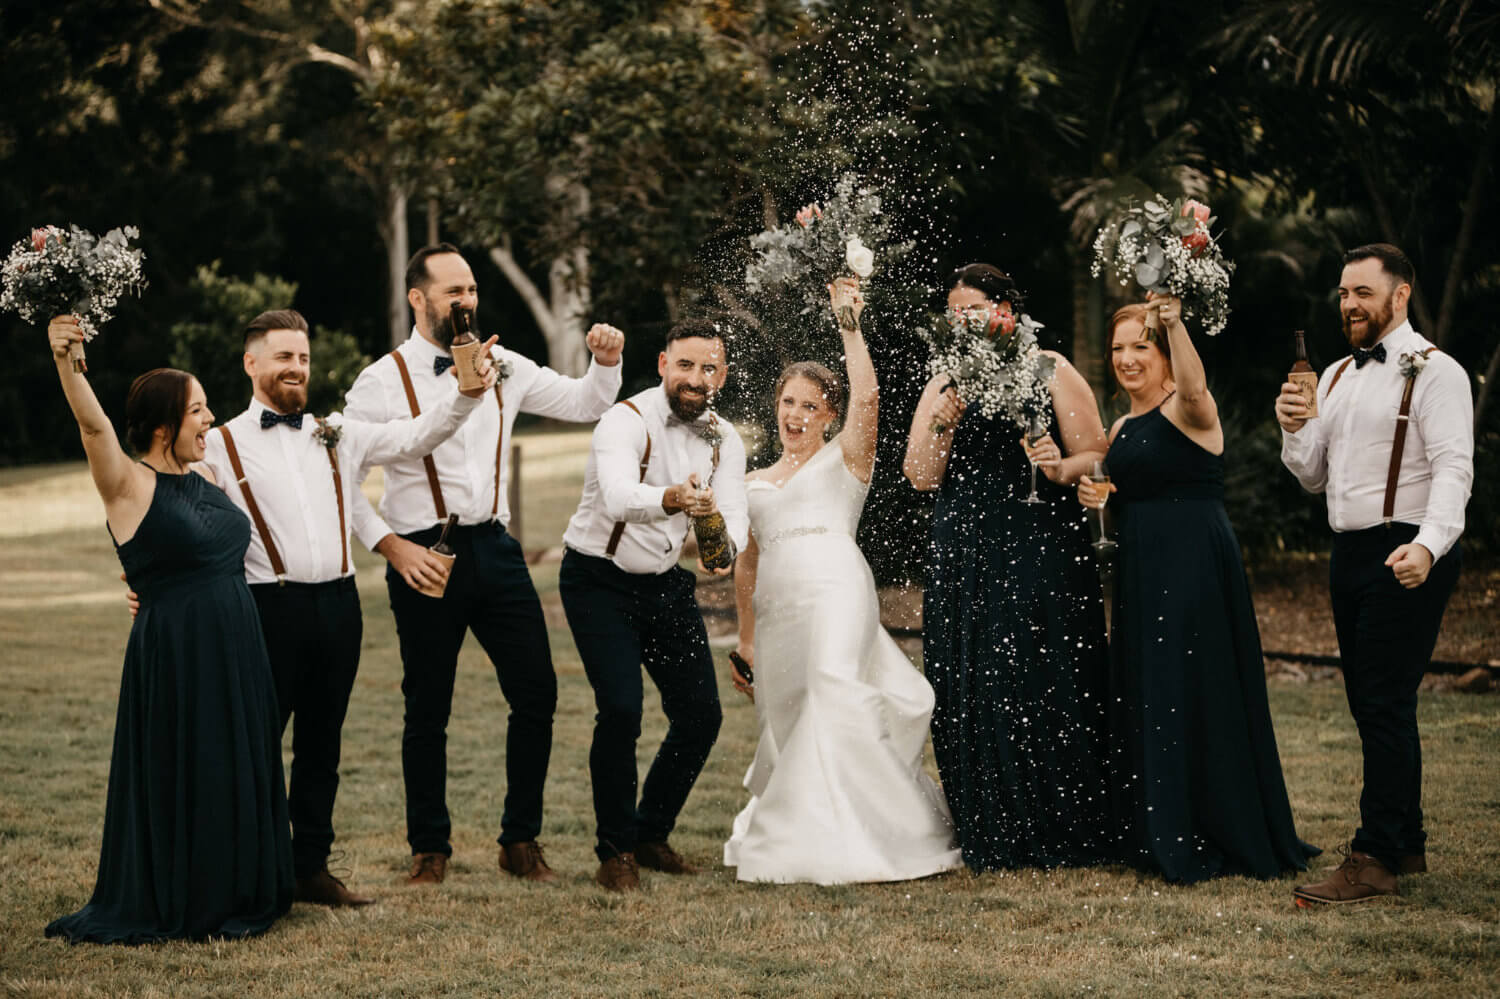 Best Wedding Planners Toowoomba Warrior Rose Events Rawn and Pallow Photography